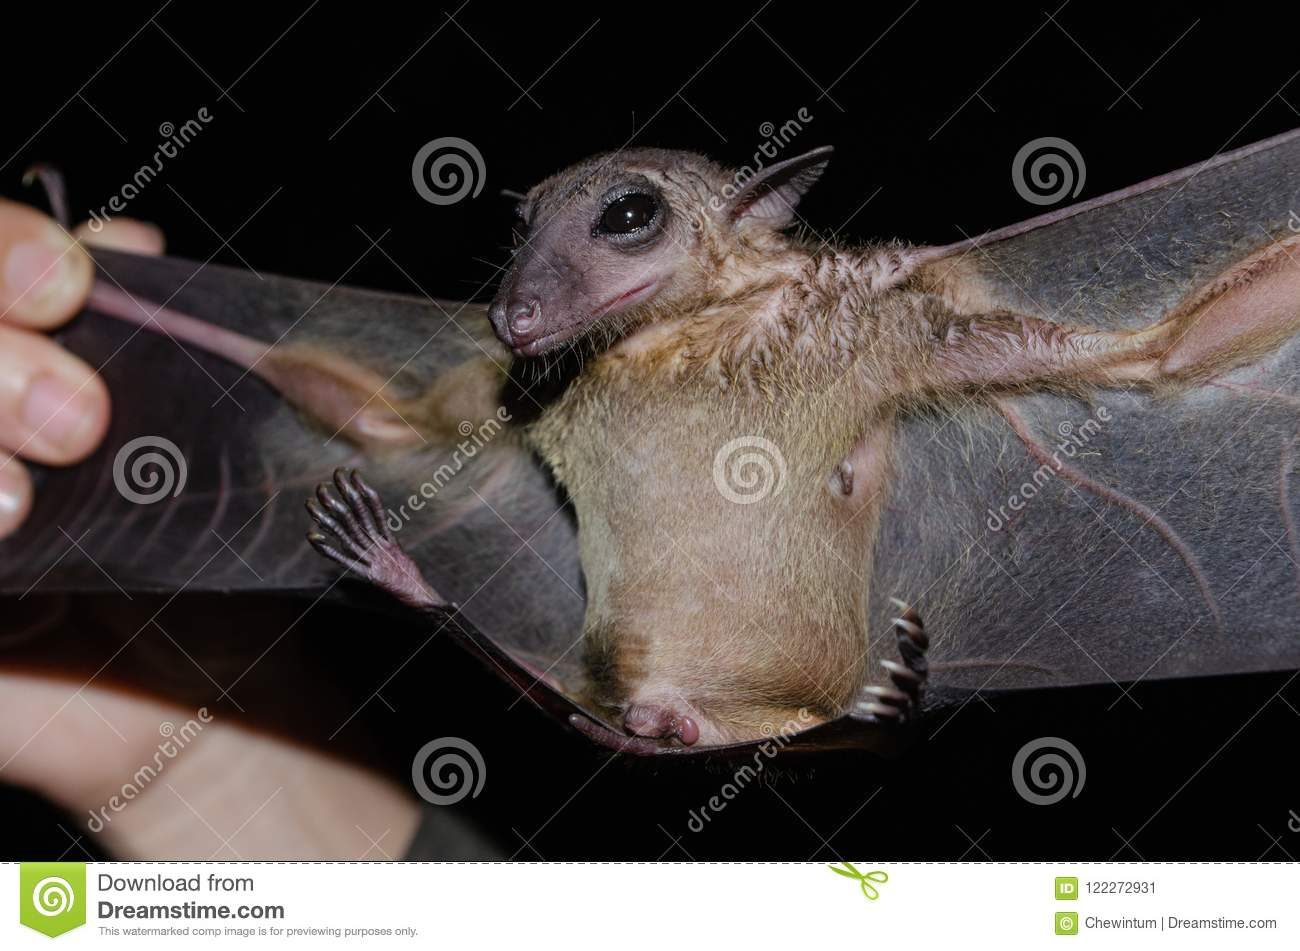 What does the bats dream about, and what to do